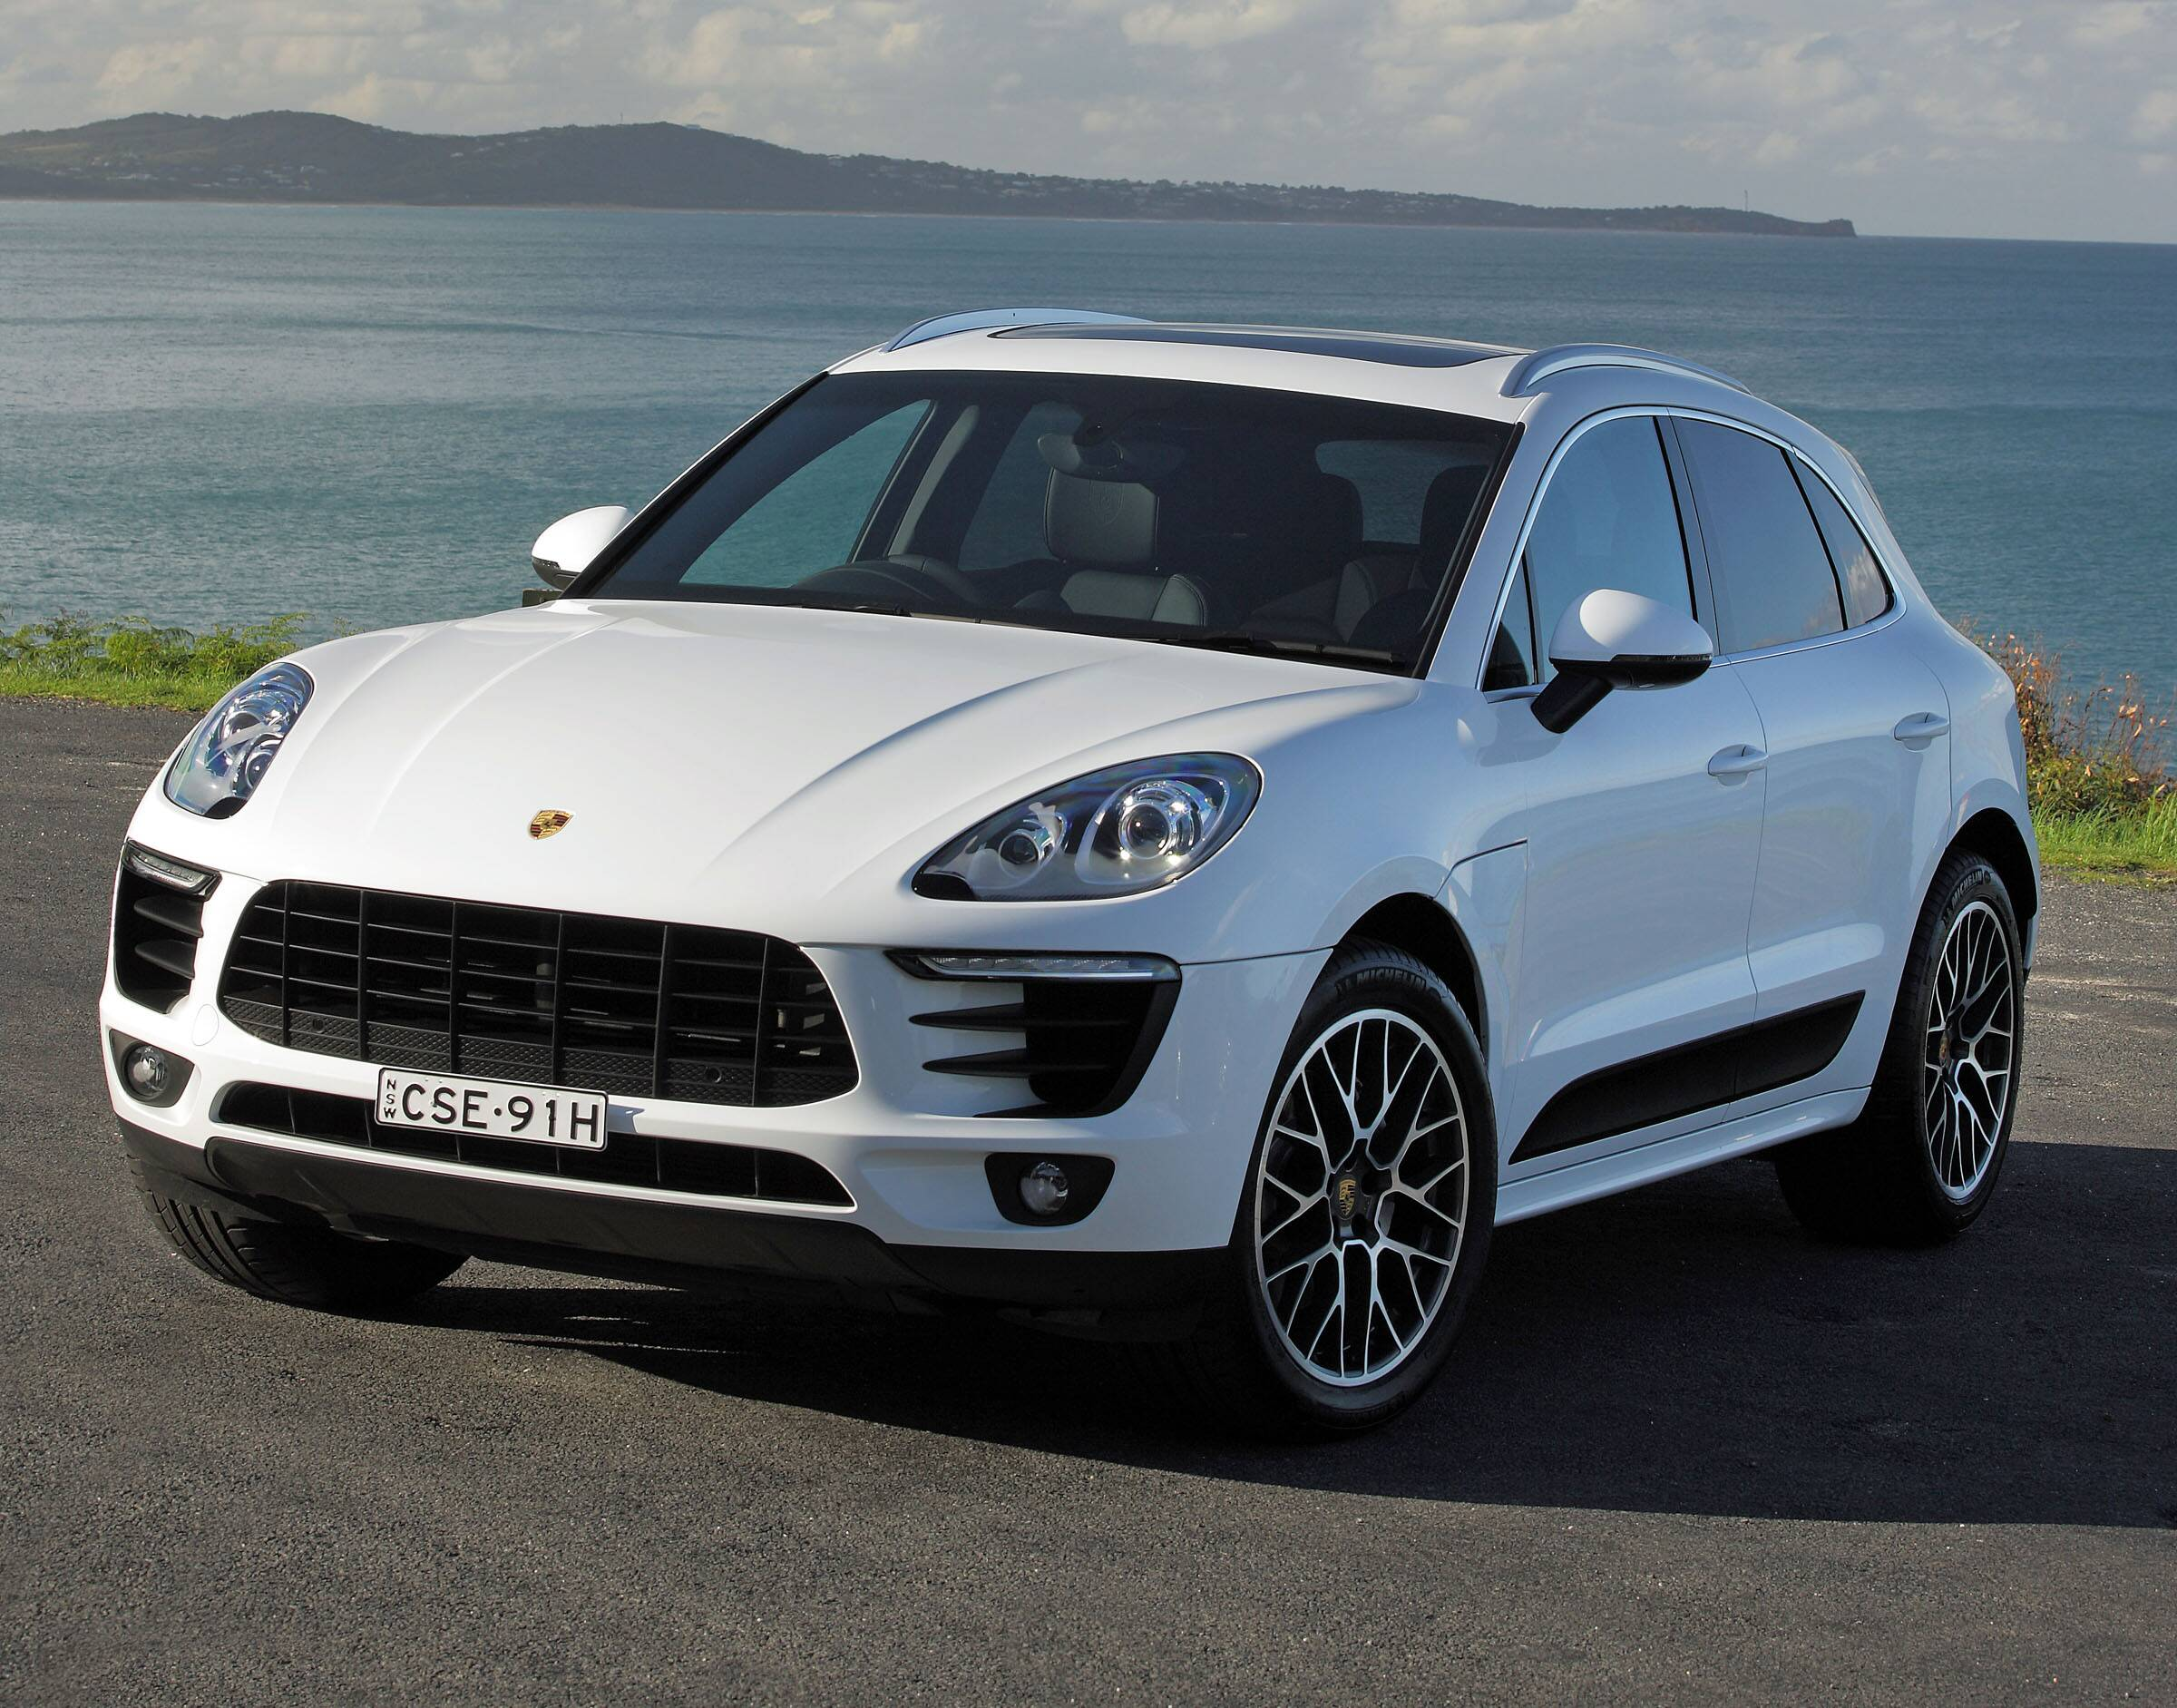 Diesel Wallpaper Cars 2015 Porsche Macan S Review Carsguide